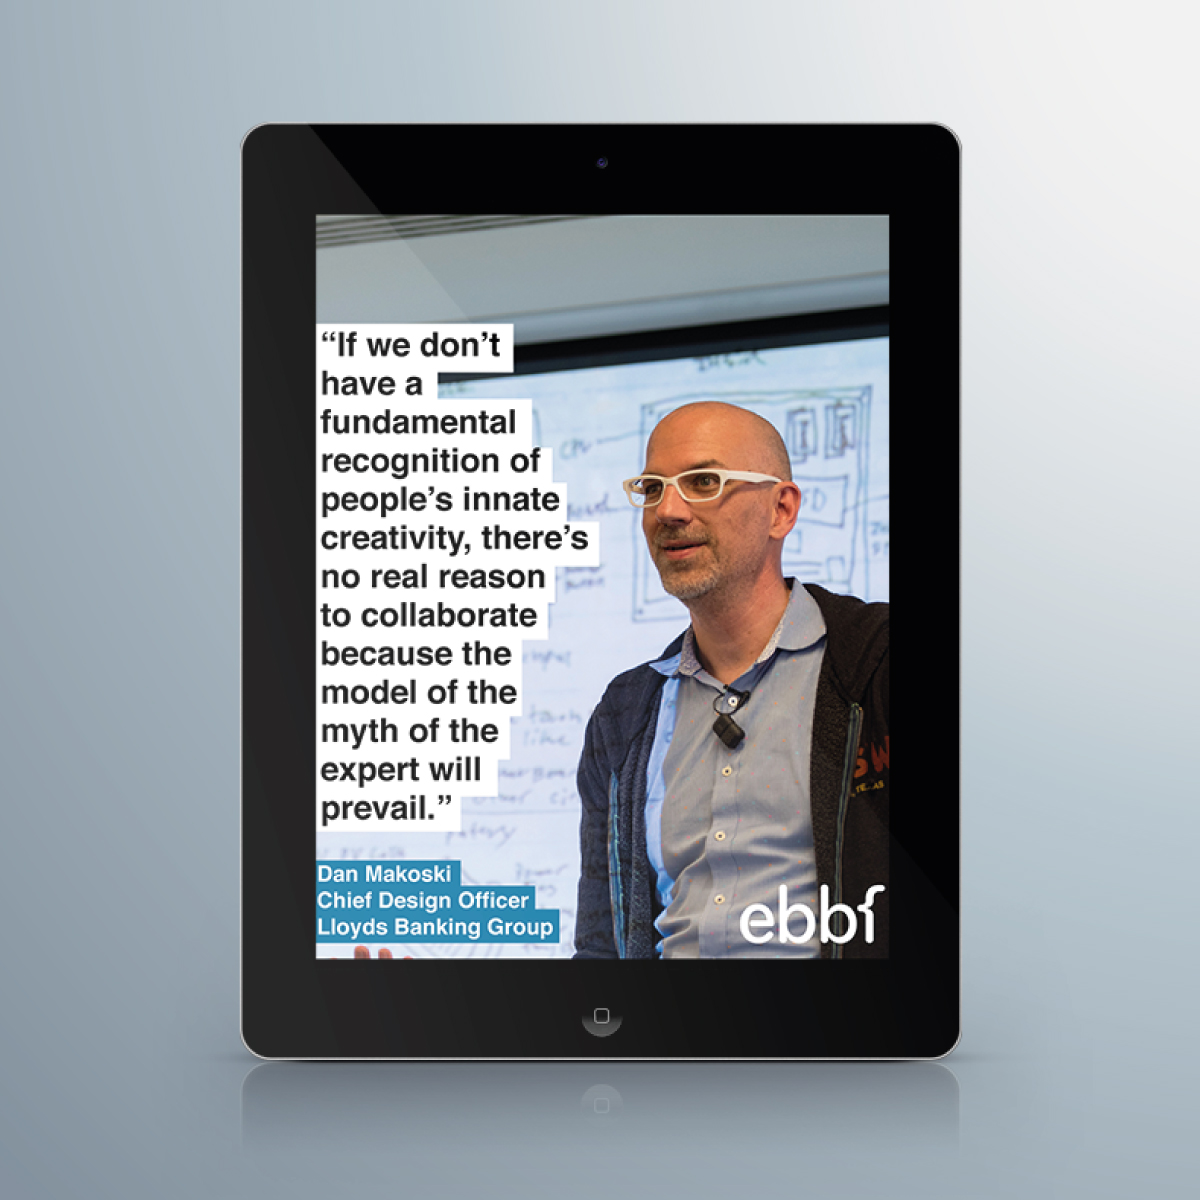 ebbf uk digital campaigns